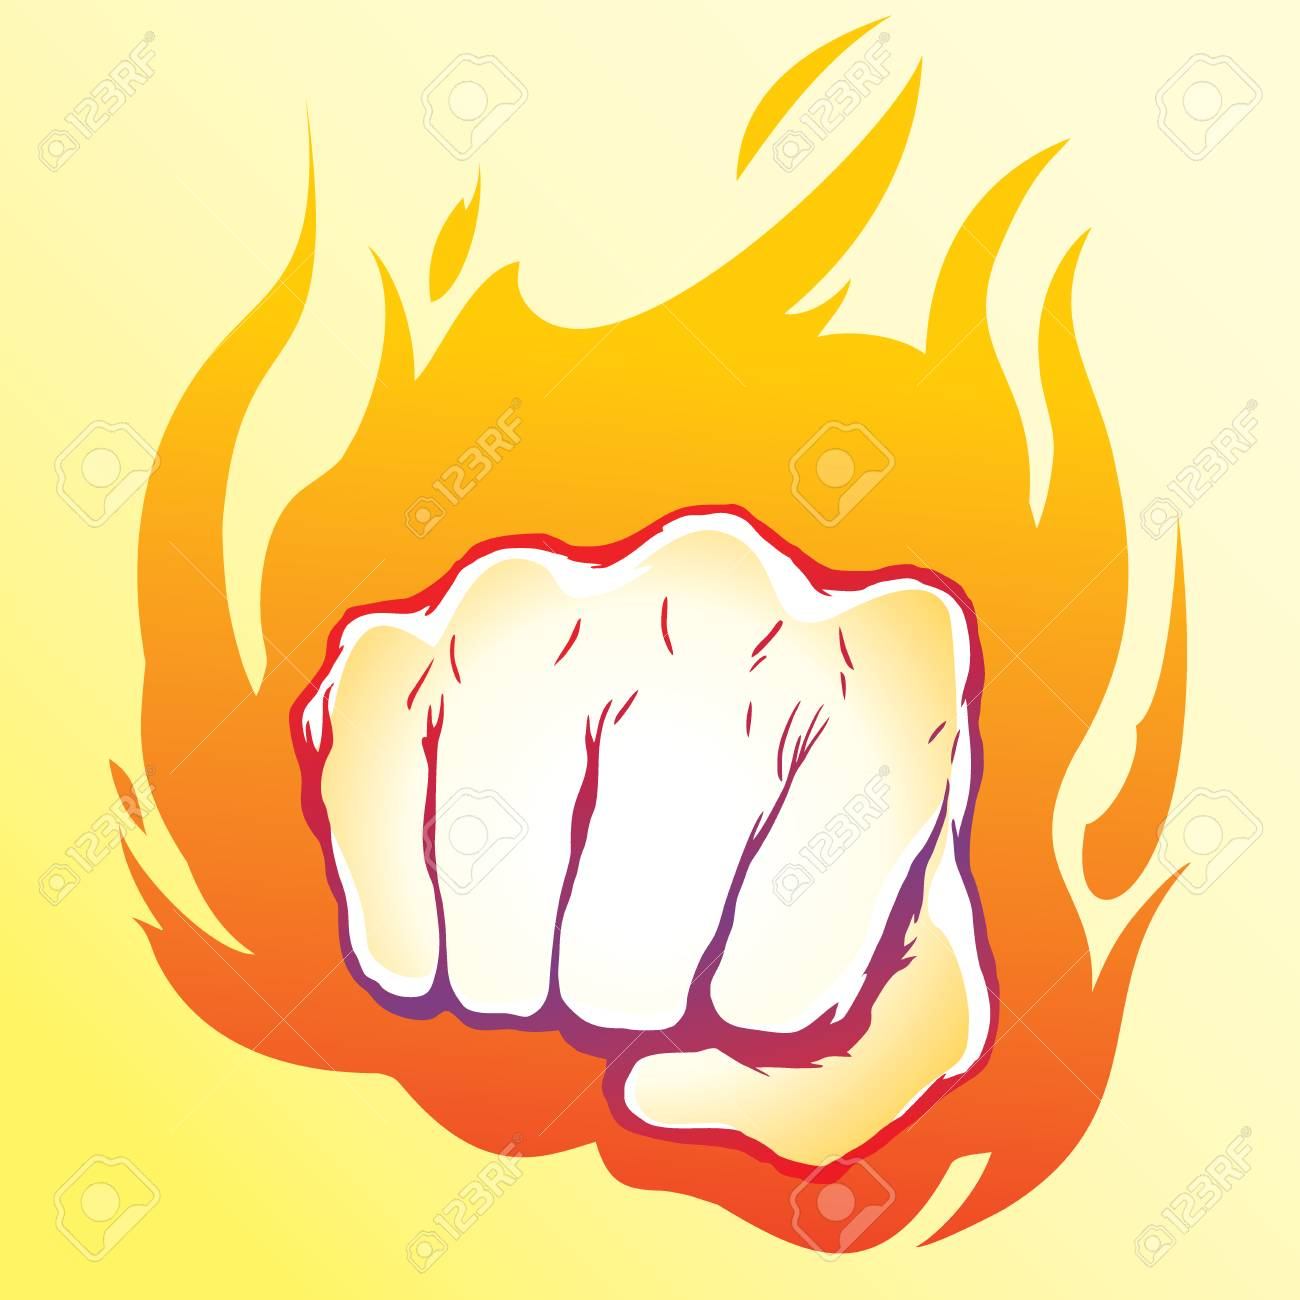 Punching Fist Hand Vector Royalty Free Cliparts Vectors And Stock Illustration Image 111437516